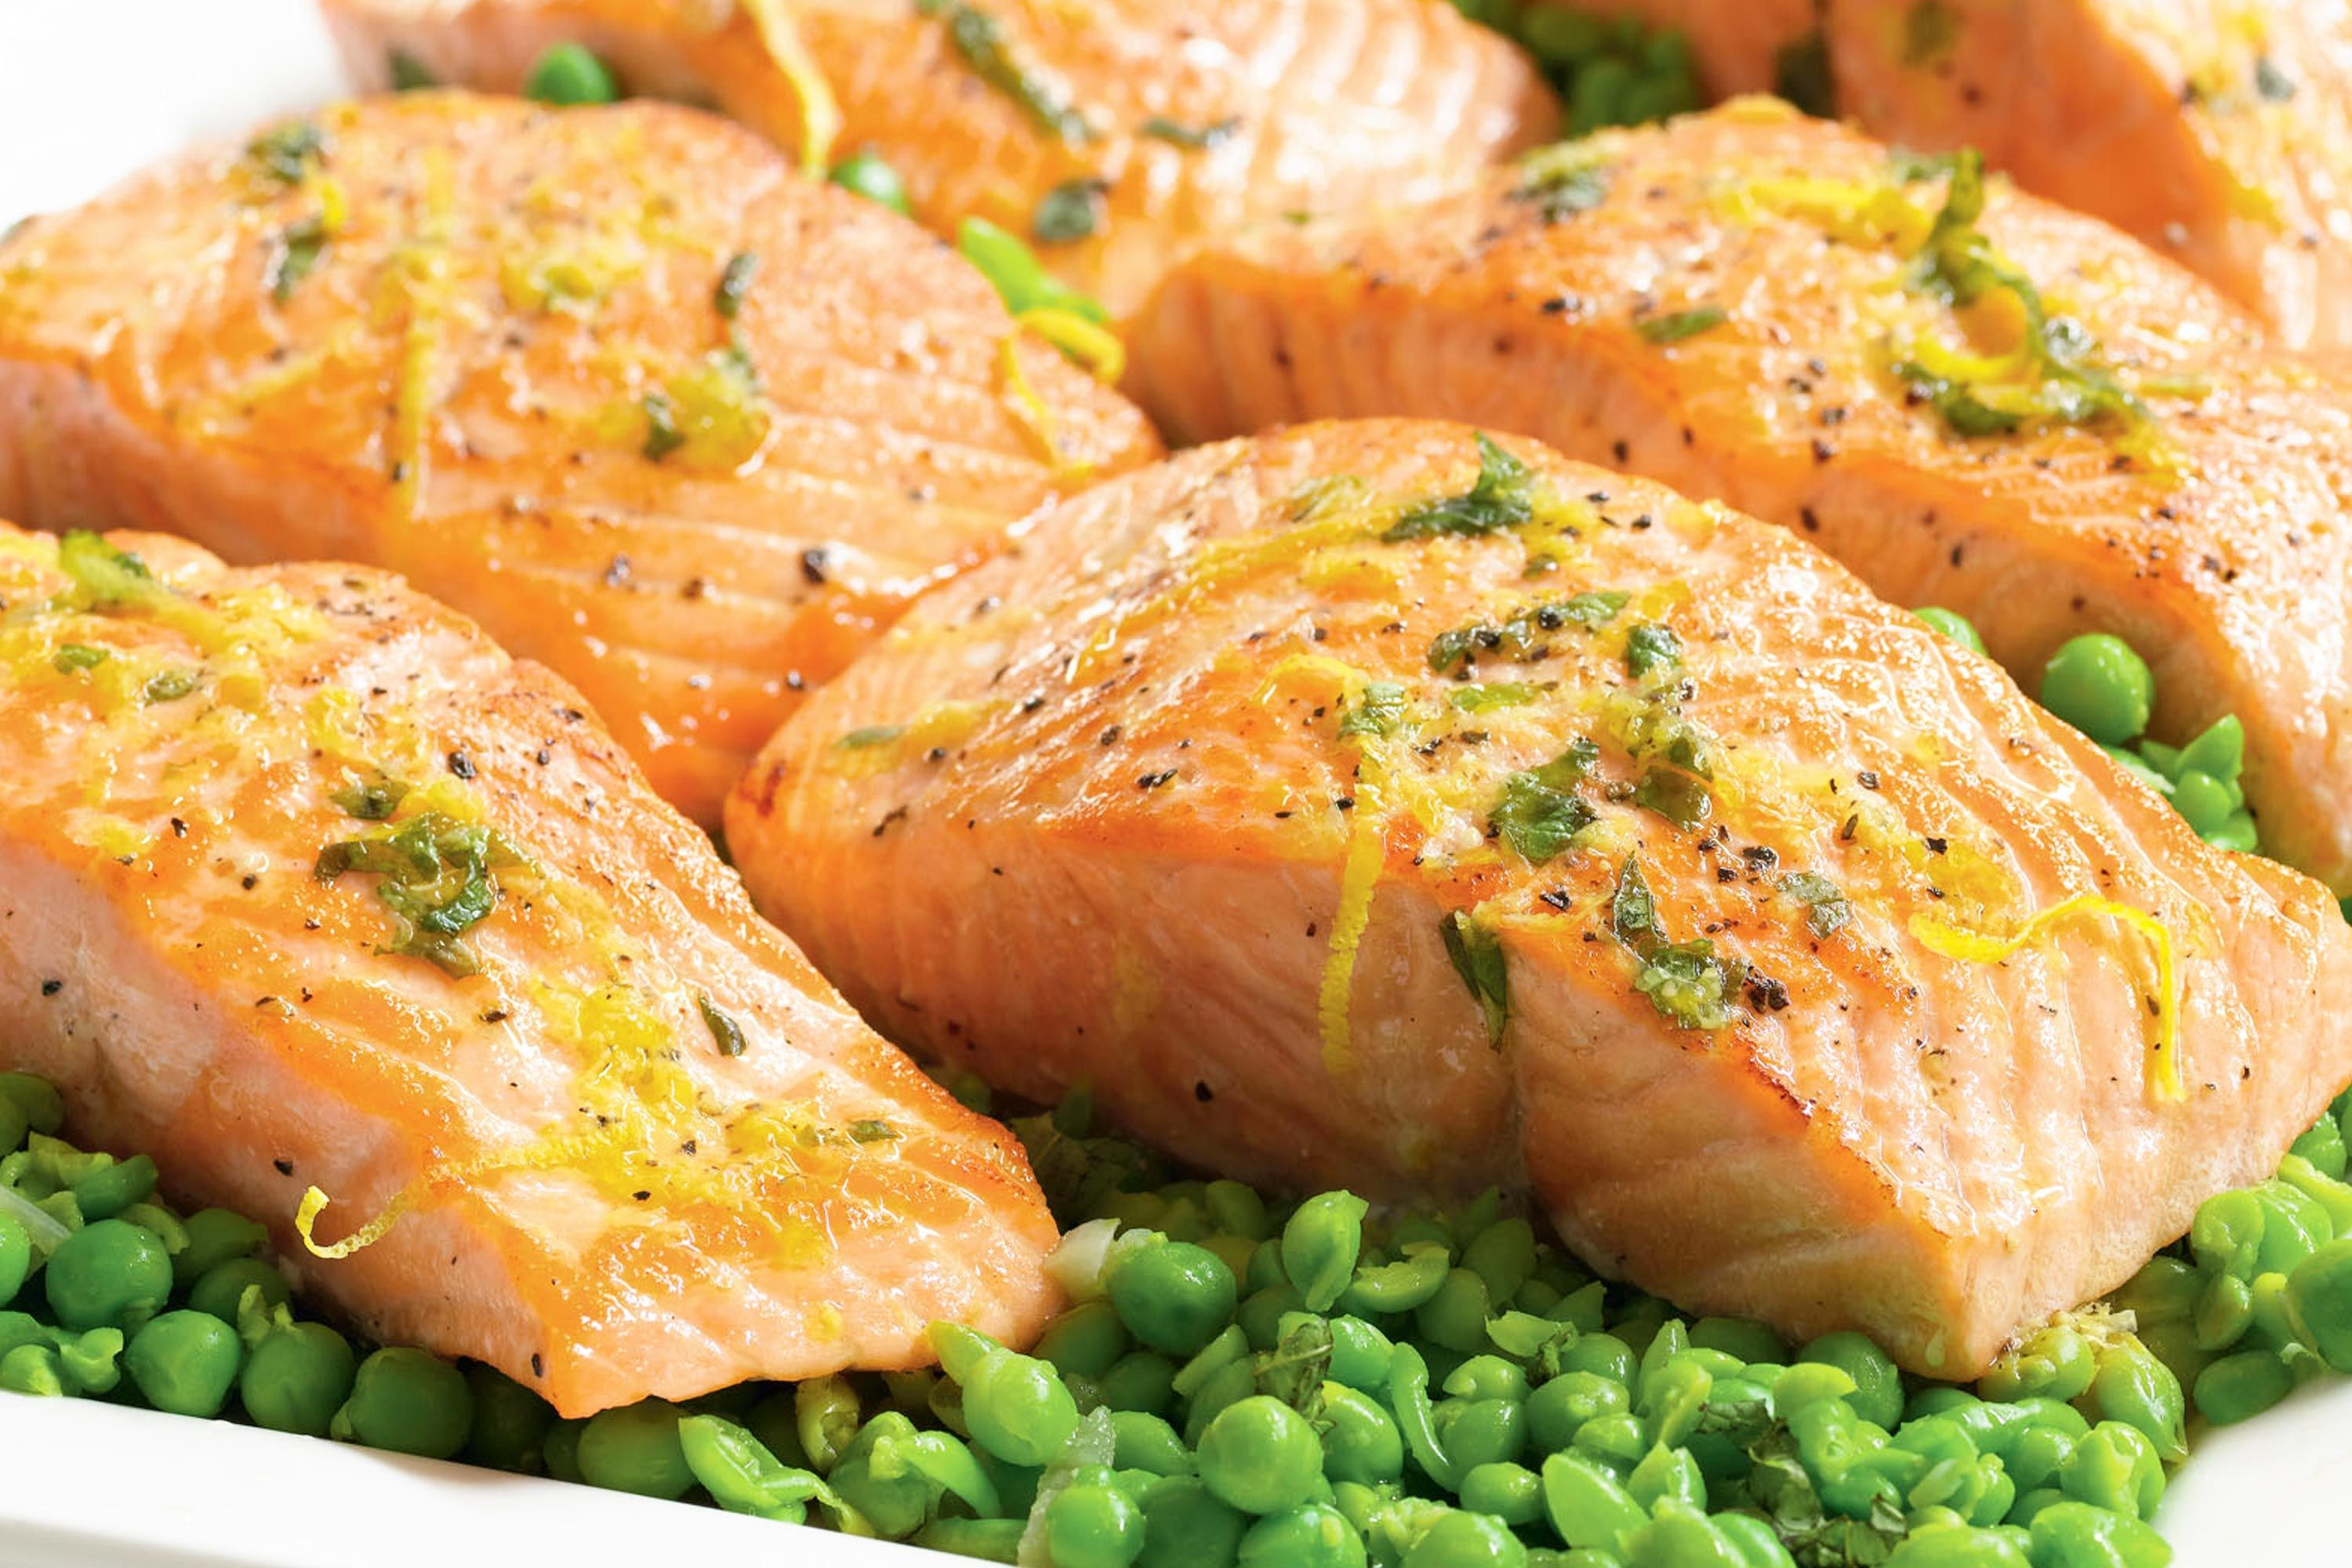 pan-seared-salmon-with-smashed-peas-89698-1